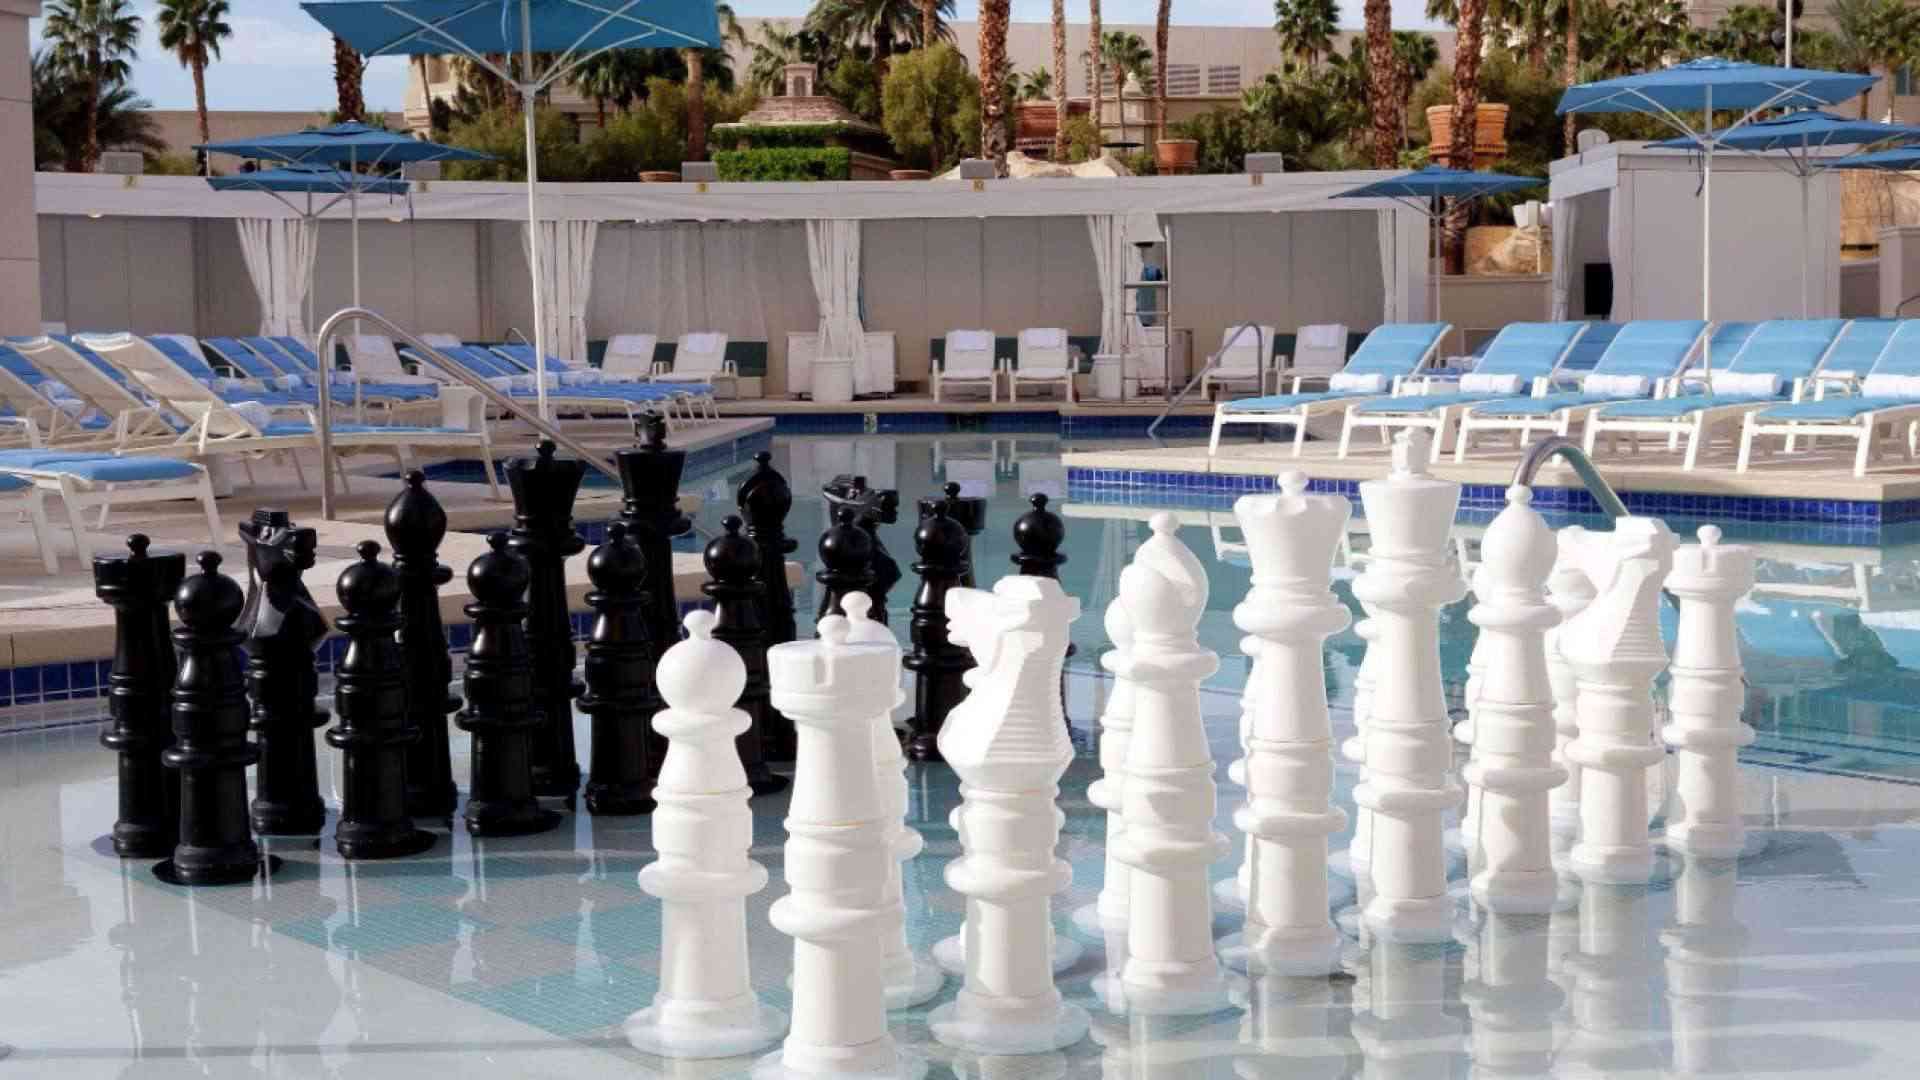 Oversized chess pieces partially submerged in an outdoor resort pool